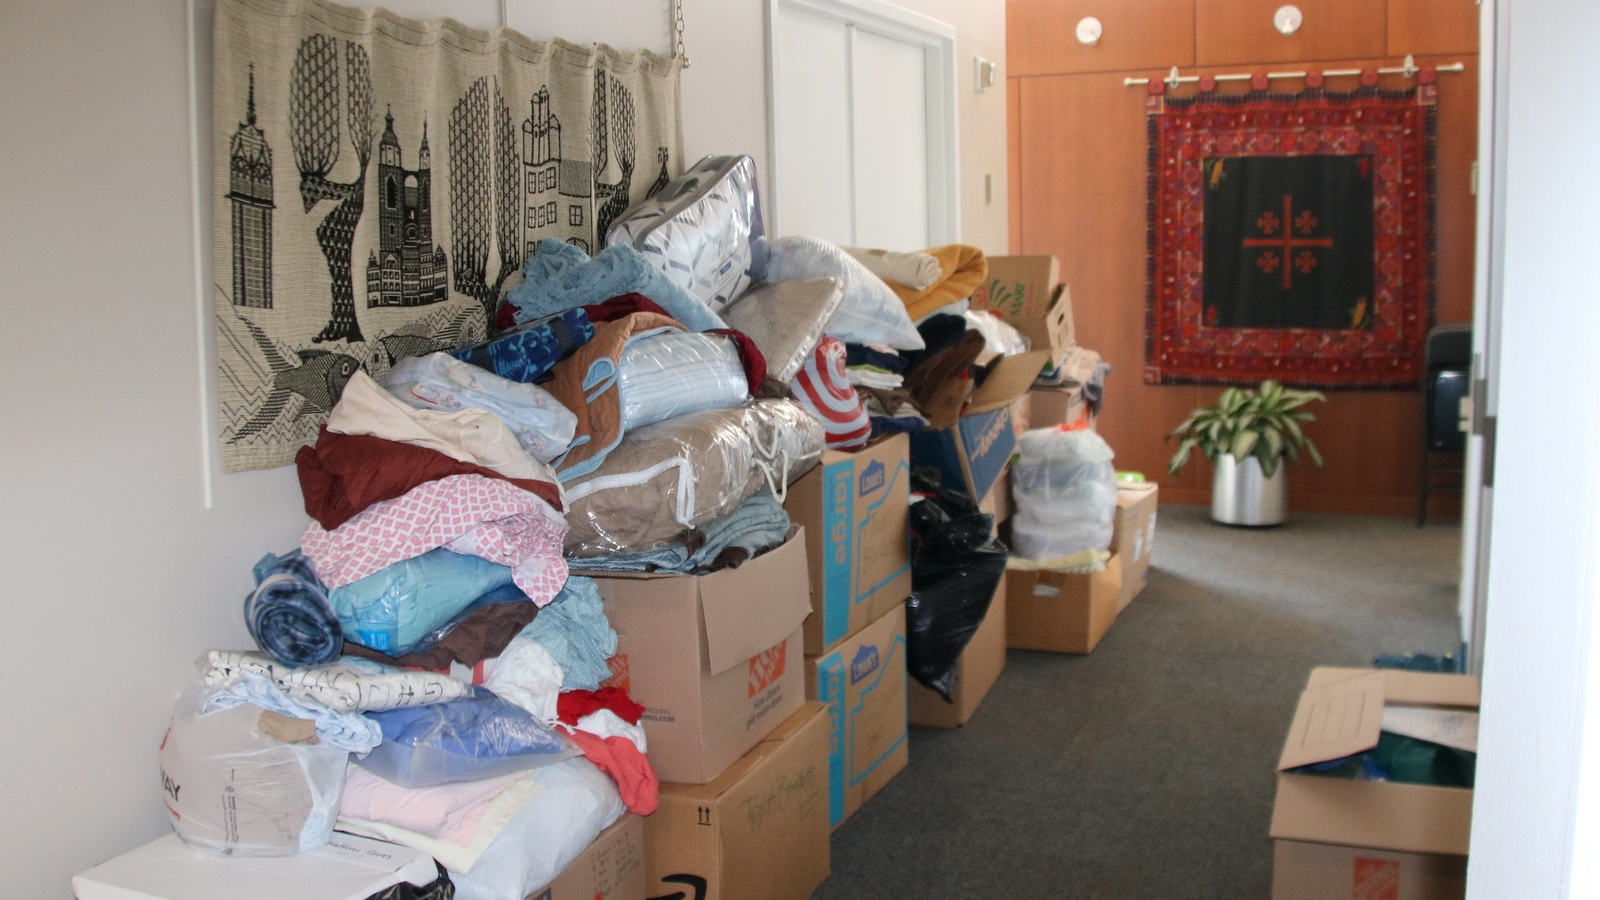 Donated bedding lines a hallway at Lutheran Immigration and Refugee Service headquarters in Baltimore. (Fern Shen)